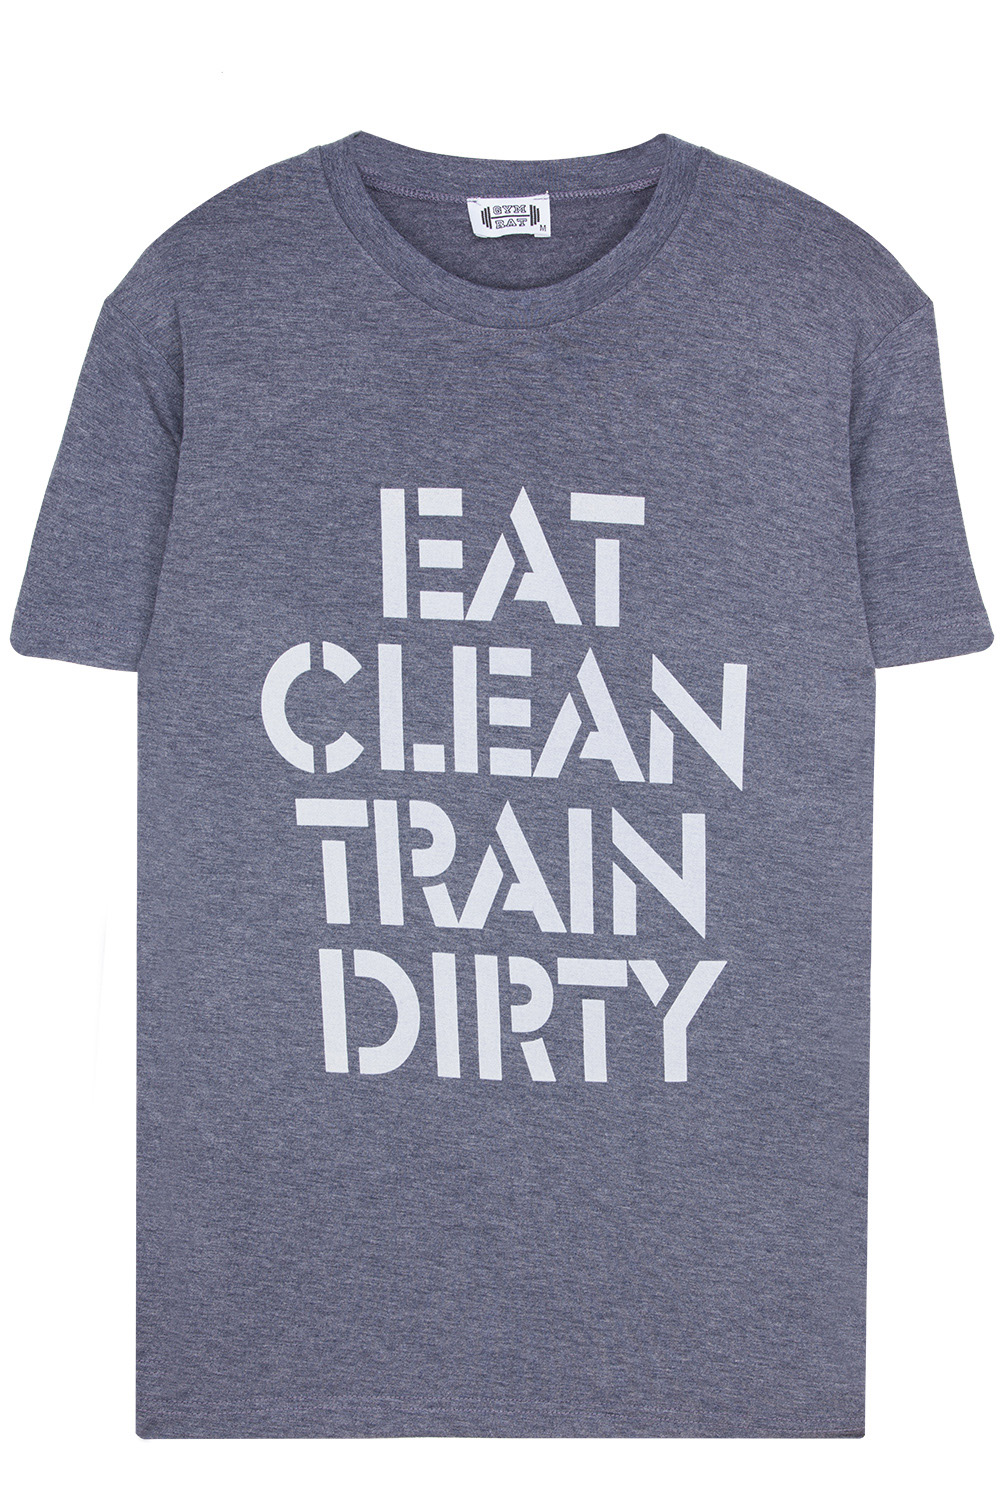 Eat Clean Train Dirty Yuvarlak Yaka Tişört